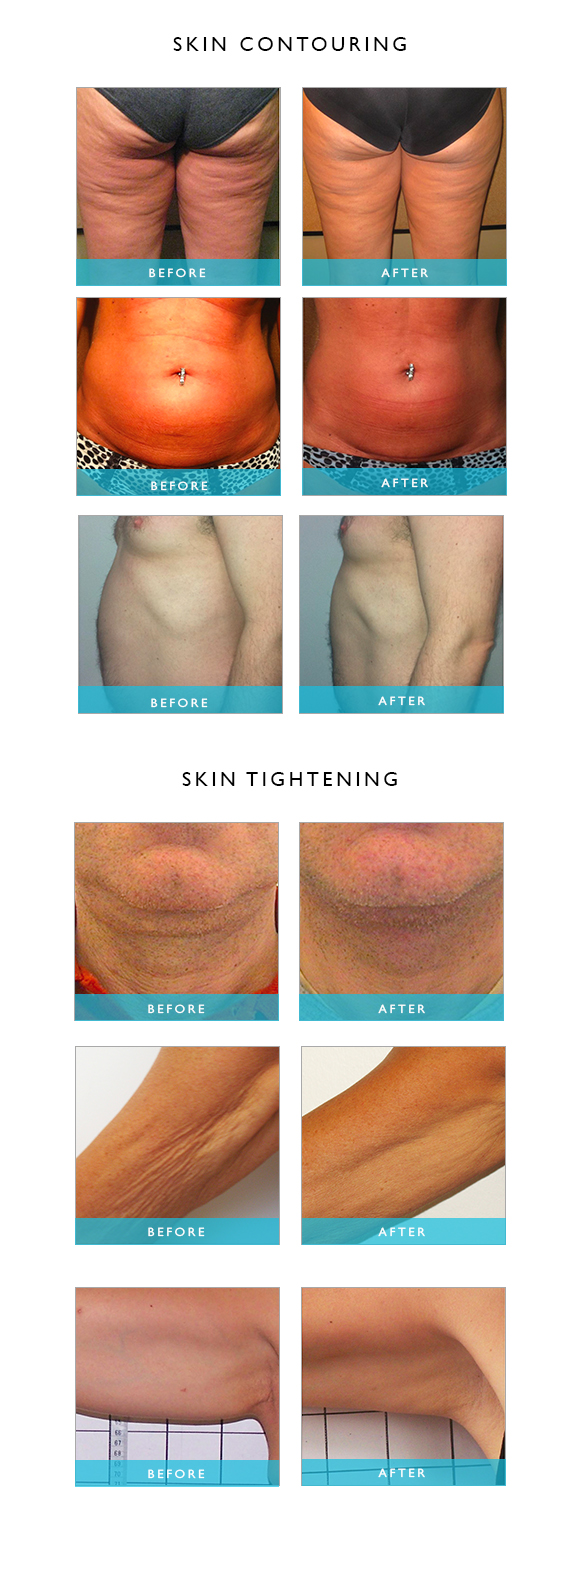 Skin_contouring_tighening_cellulite_reduction_results